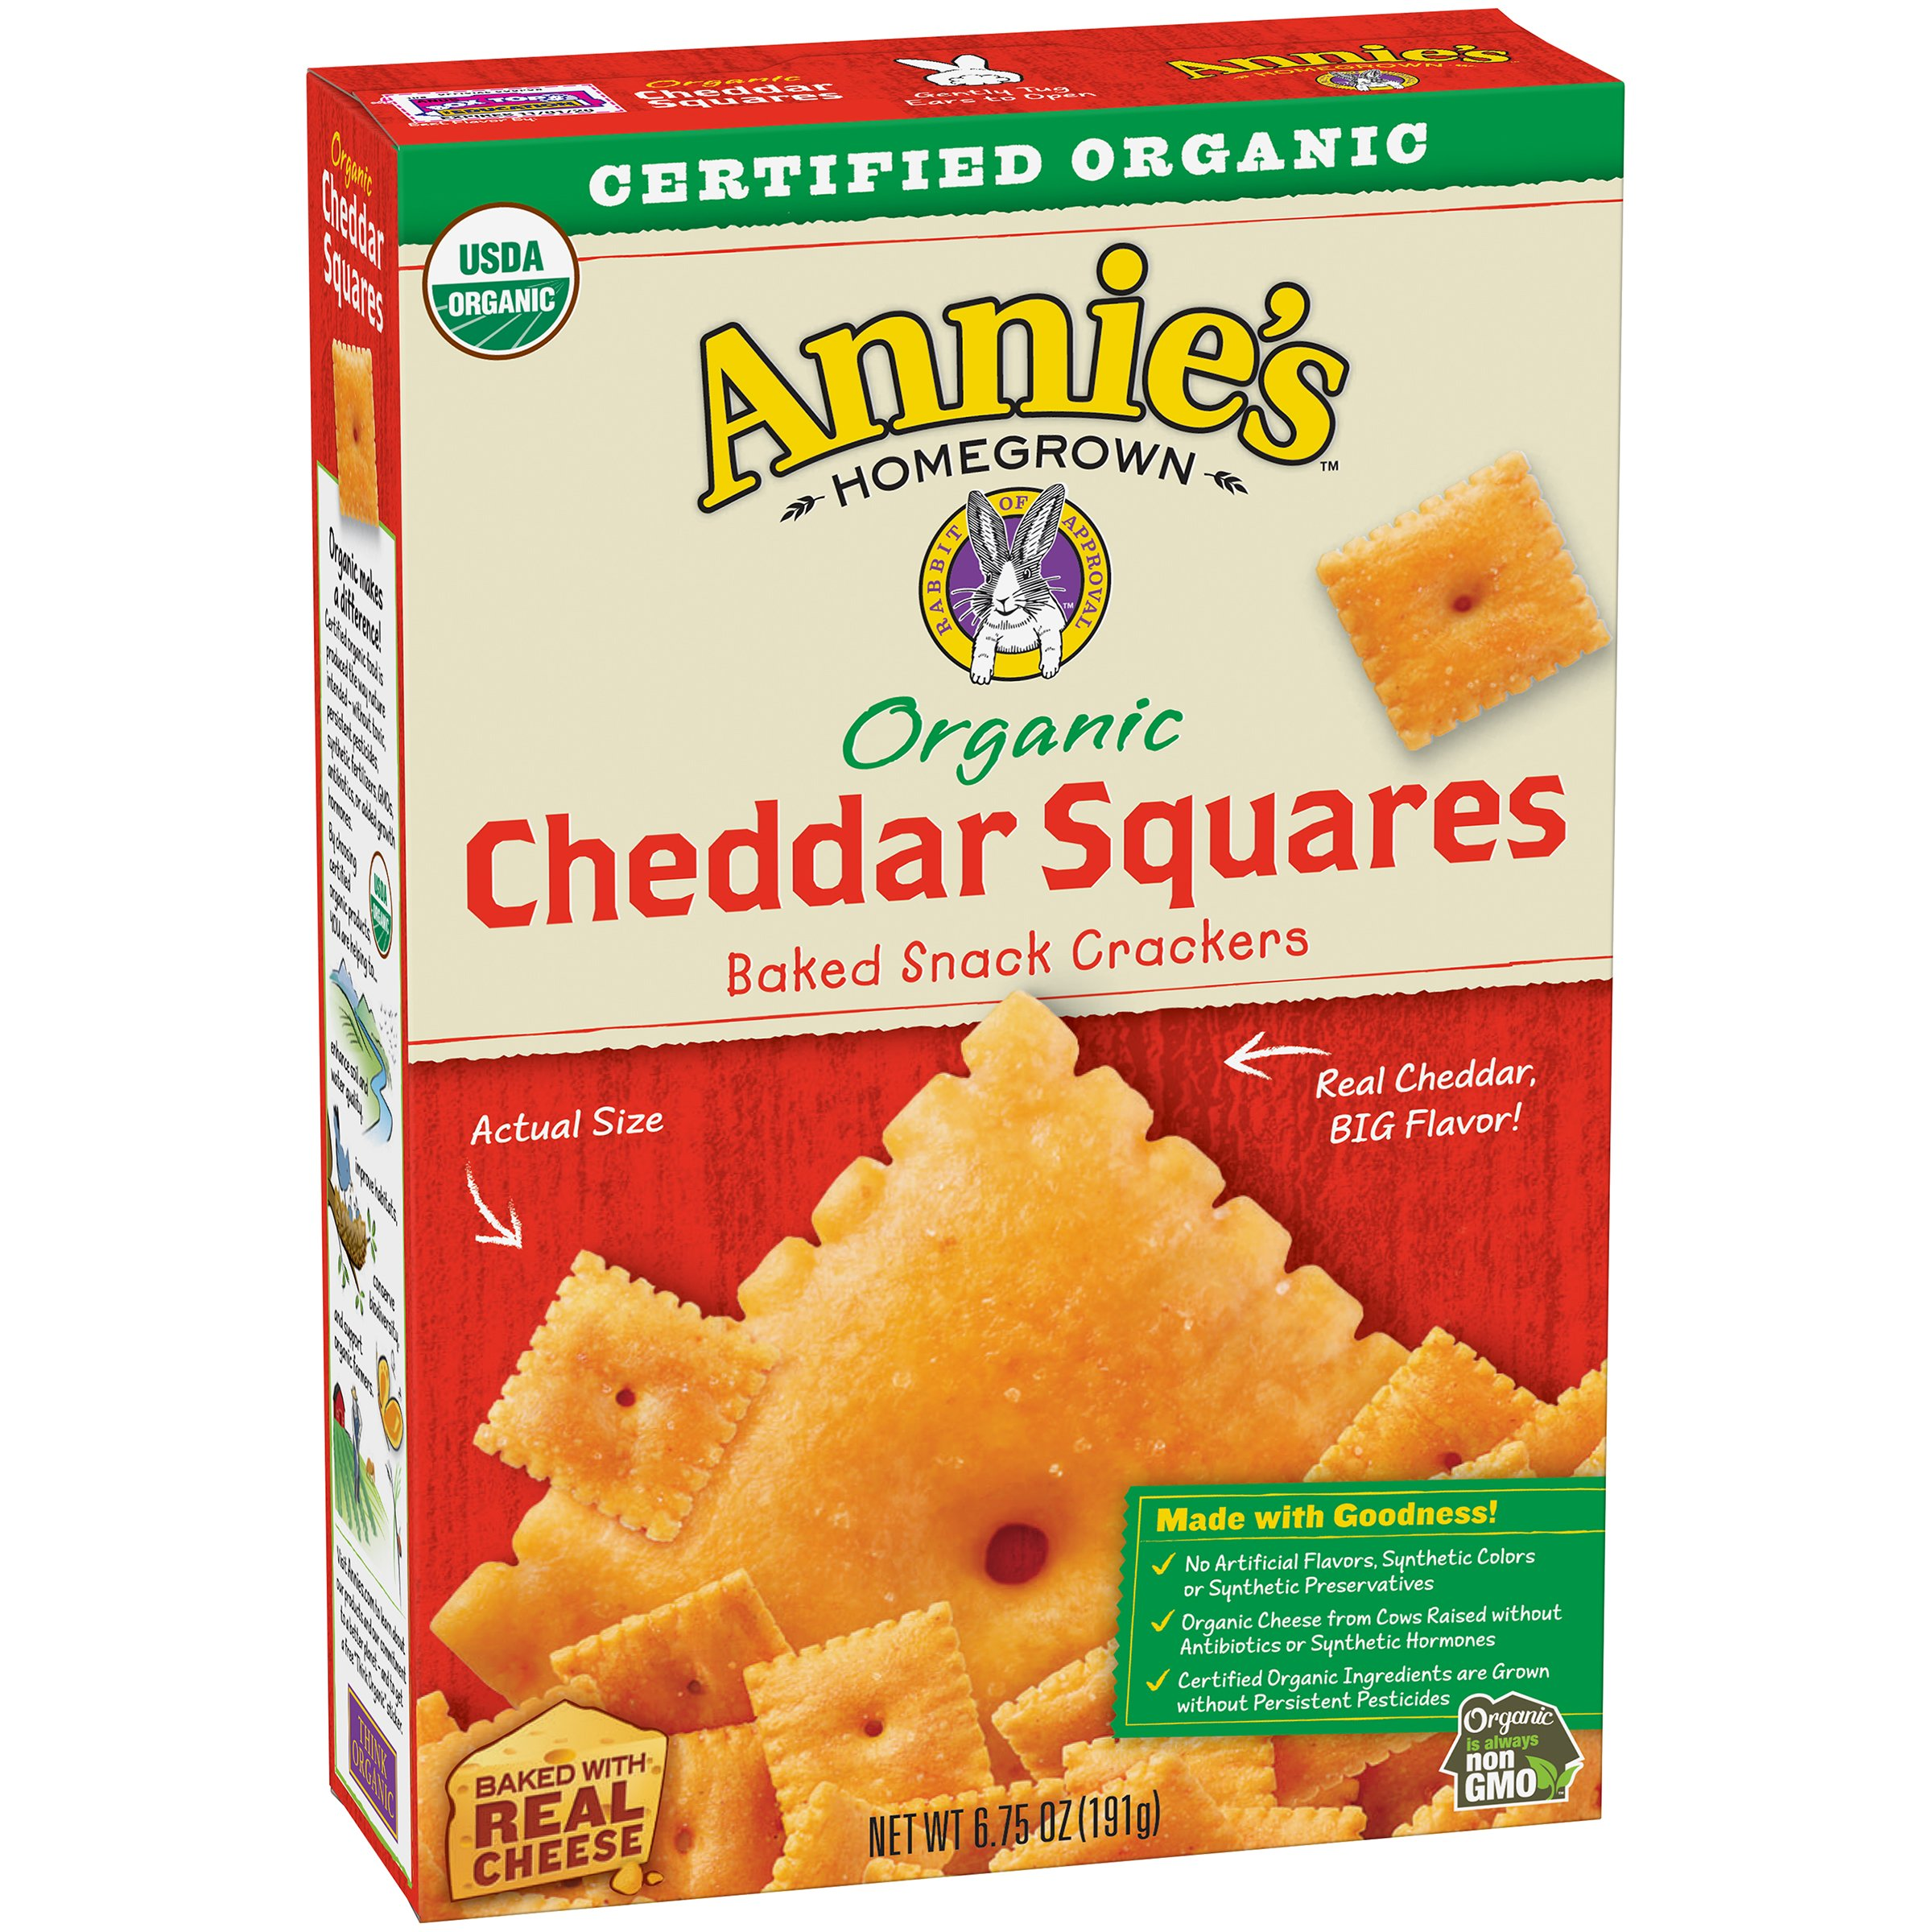 Annie's Organic Cheddar Squares, Baked Cheese Crackers, 6.75 oz Box